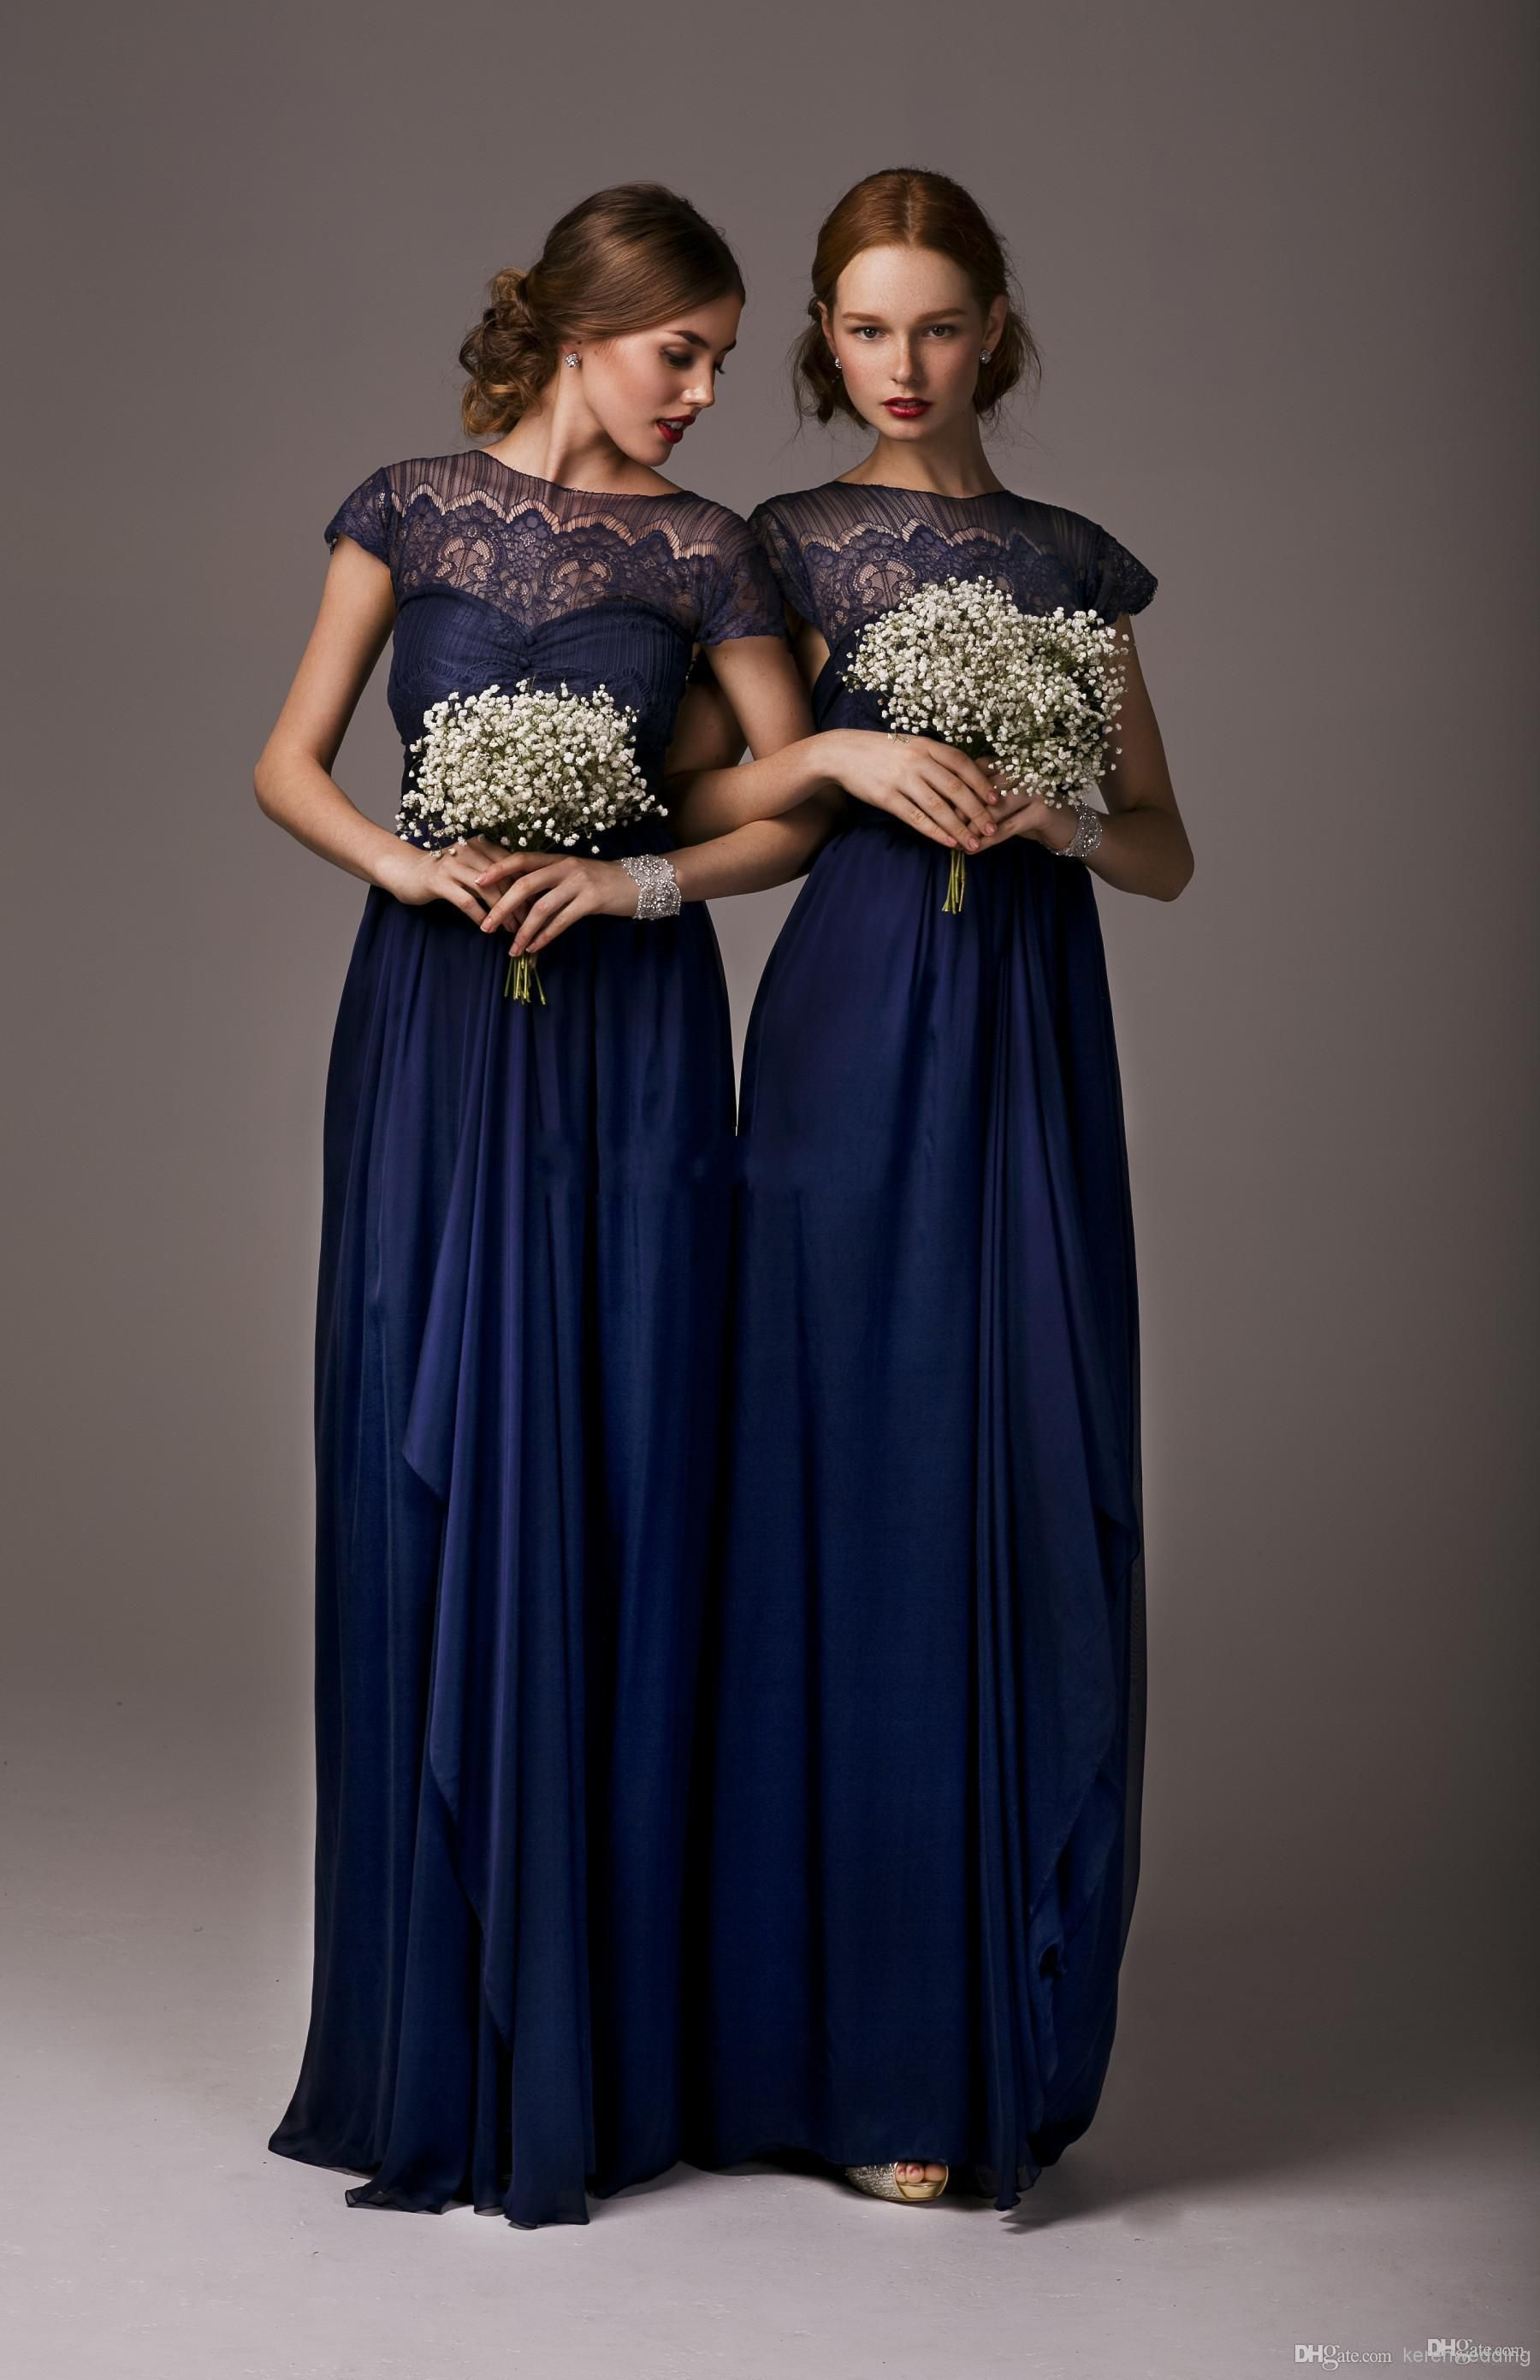 Free shipping piecebuy wholesale dn newest style navy blue